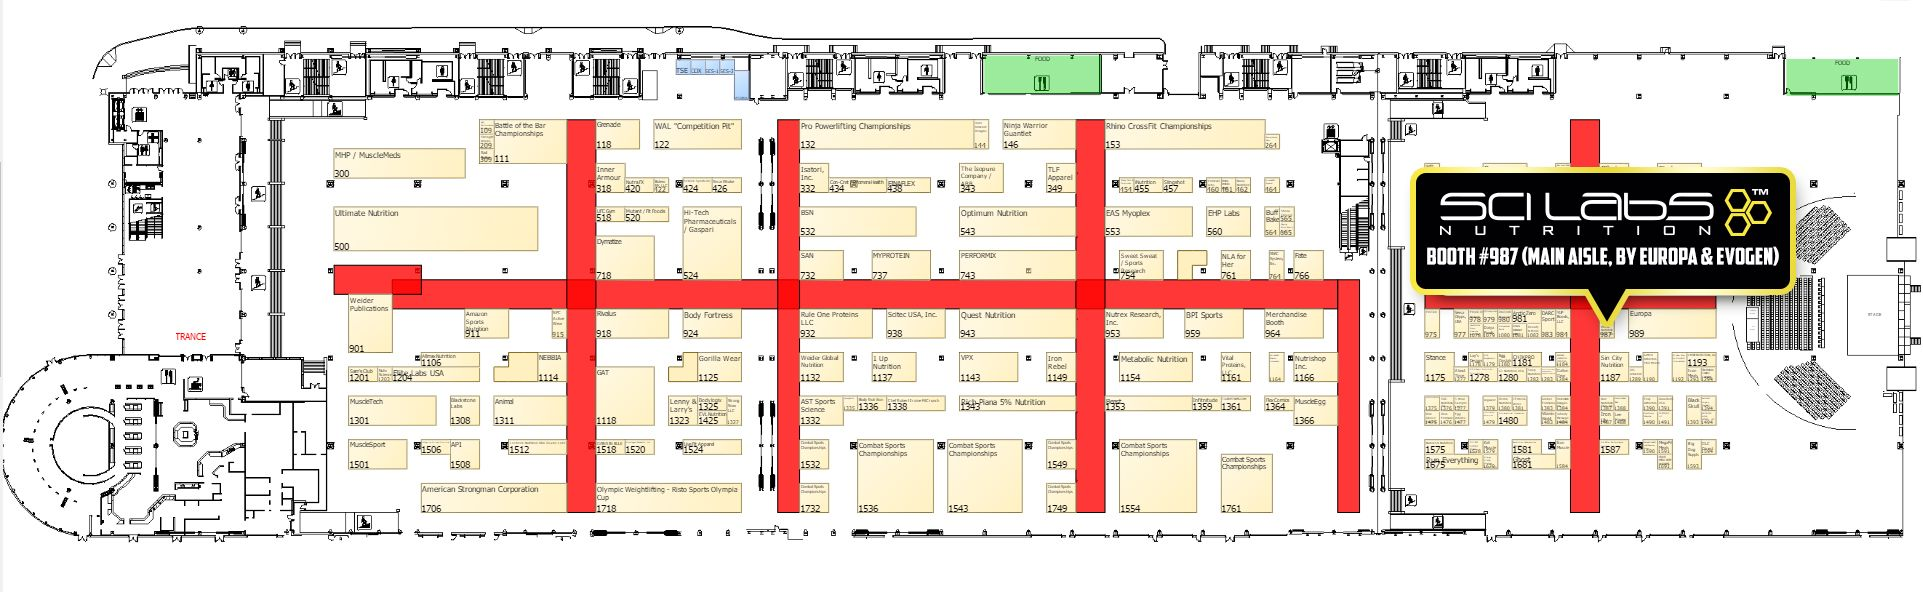 Scilabs Nutrition – Booth #987 (main aisle, by Europa & Evogen)